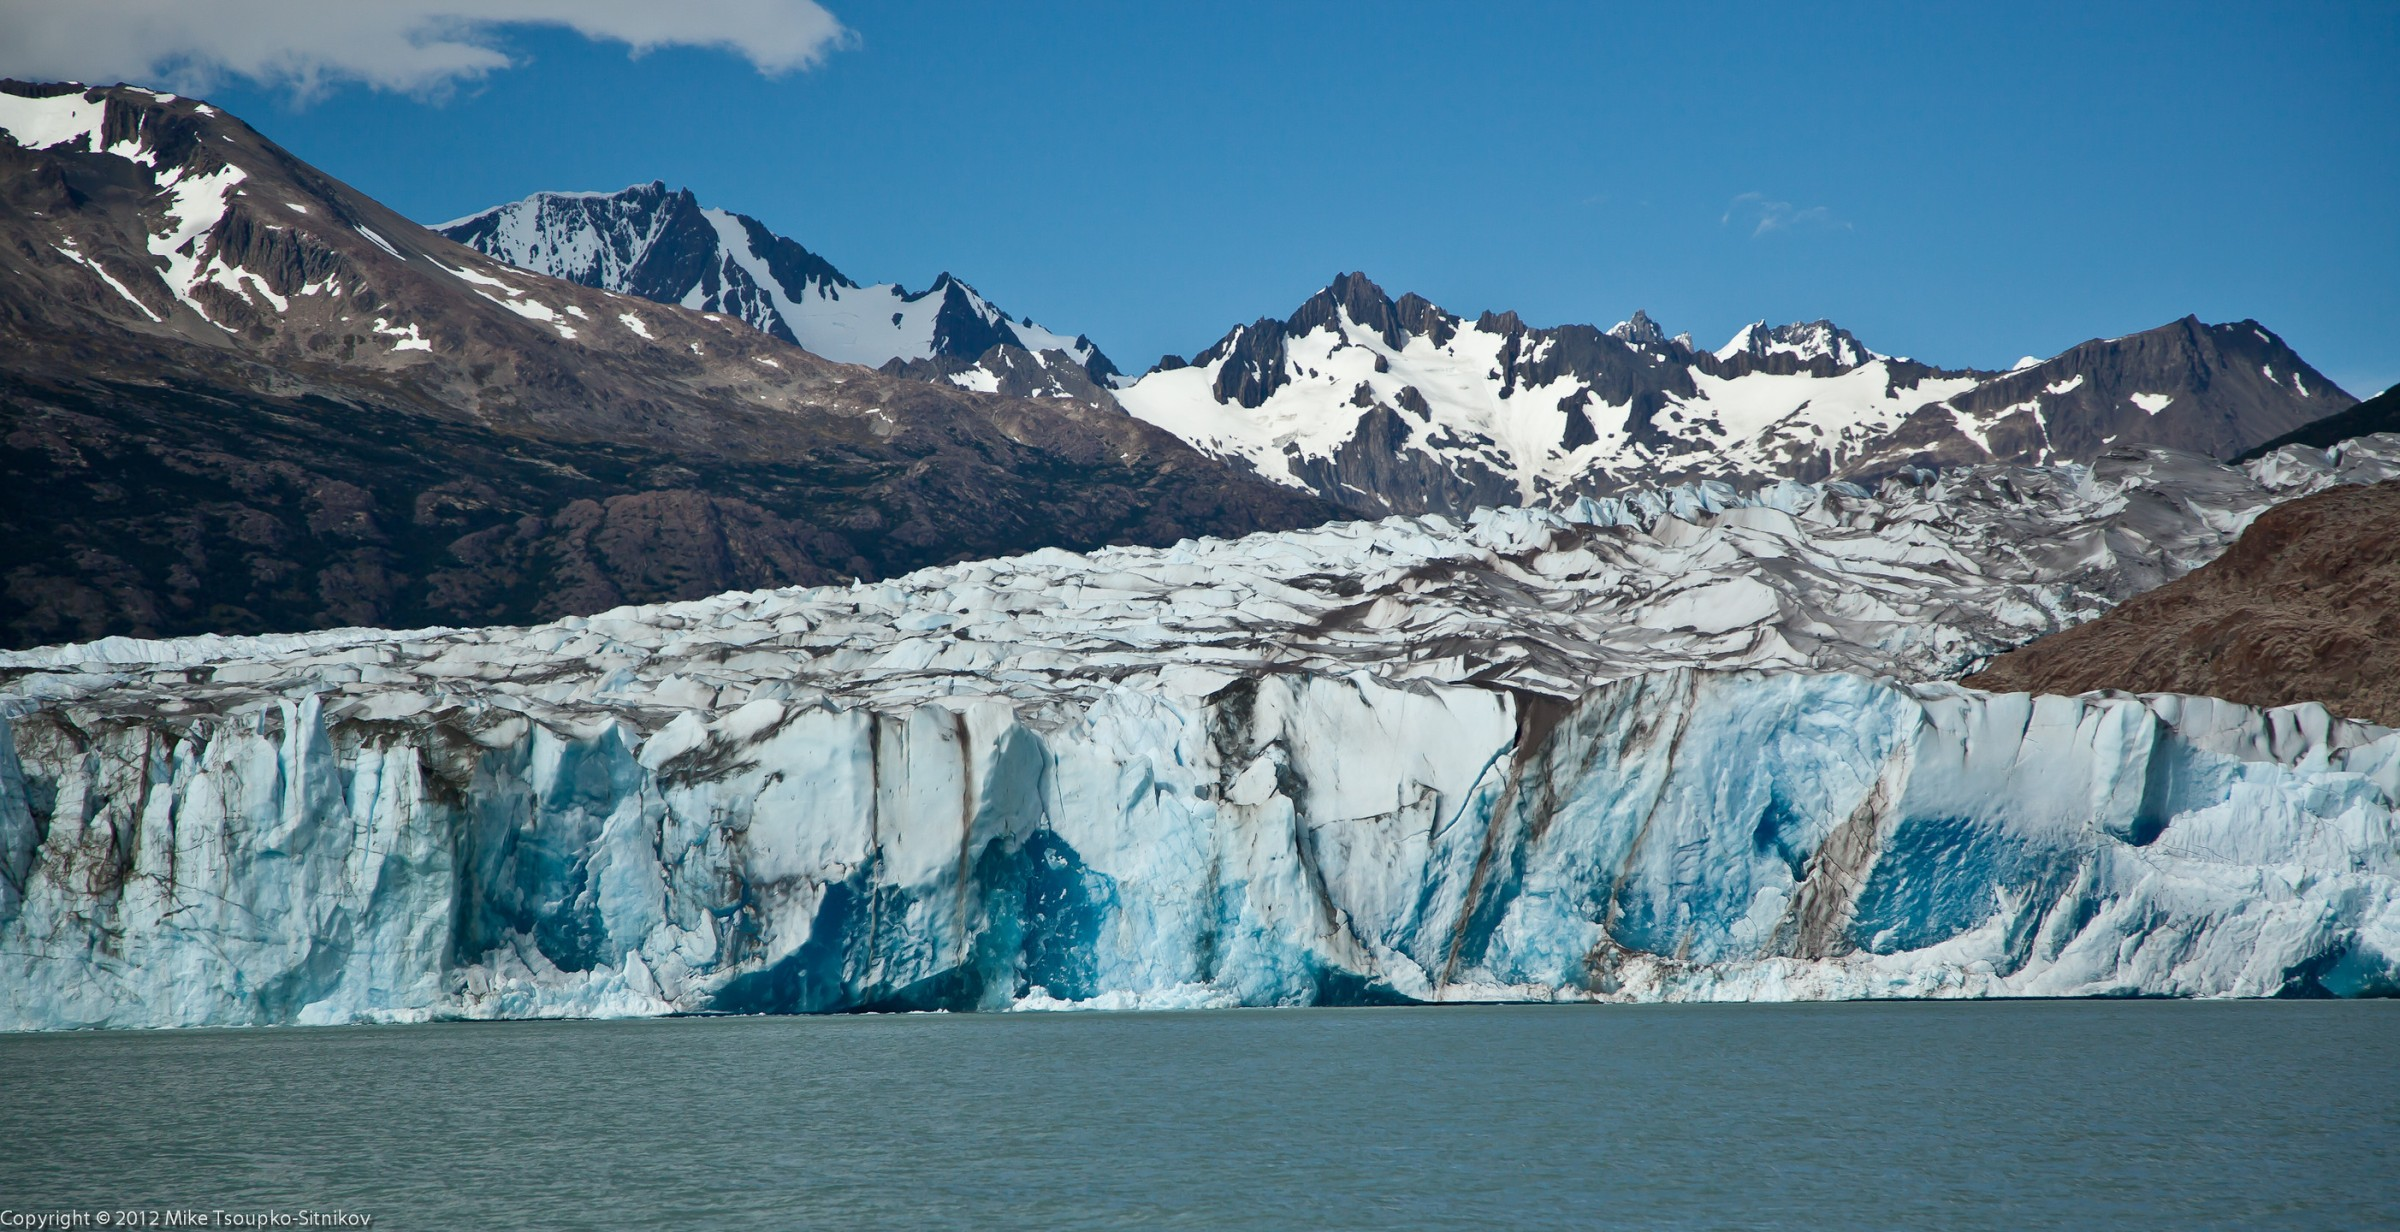 Viedma Glacier flowing into the lake